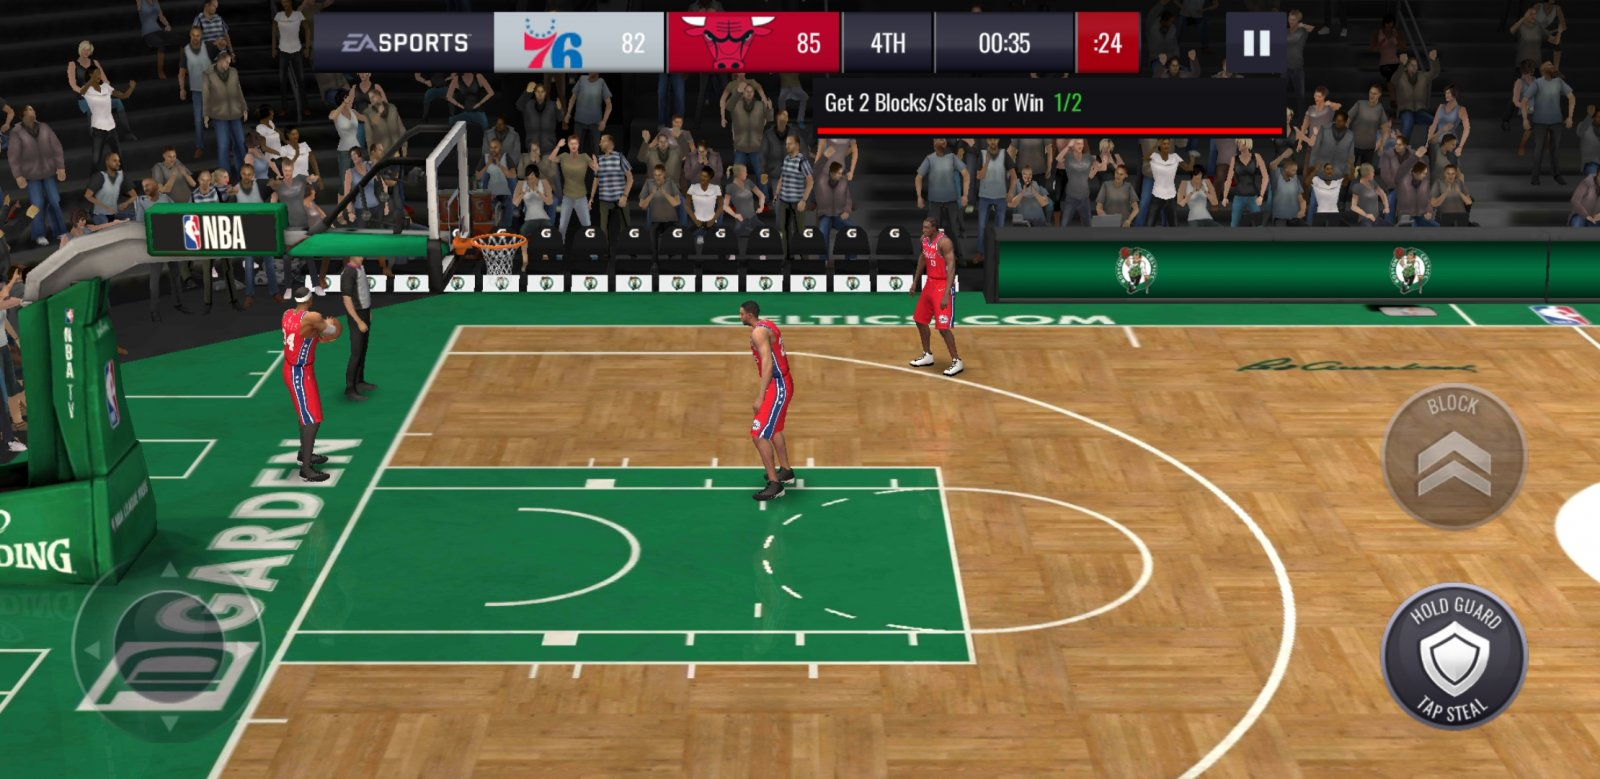 Screenshot_20200719-172342_NBA LIVE.jpg